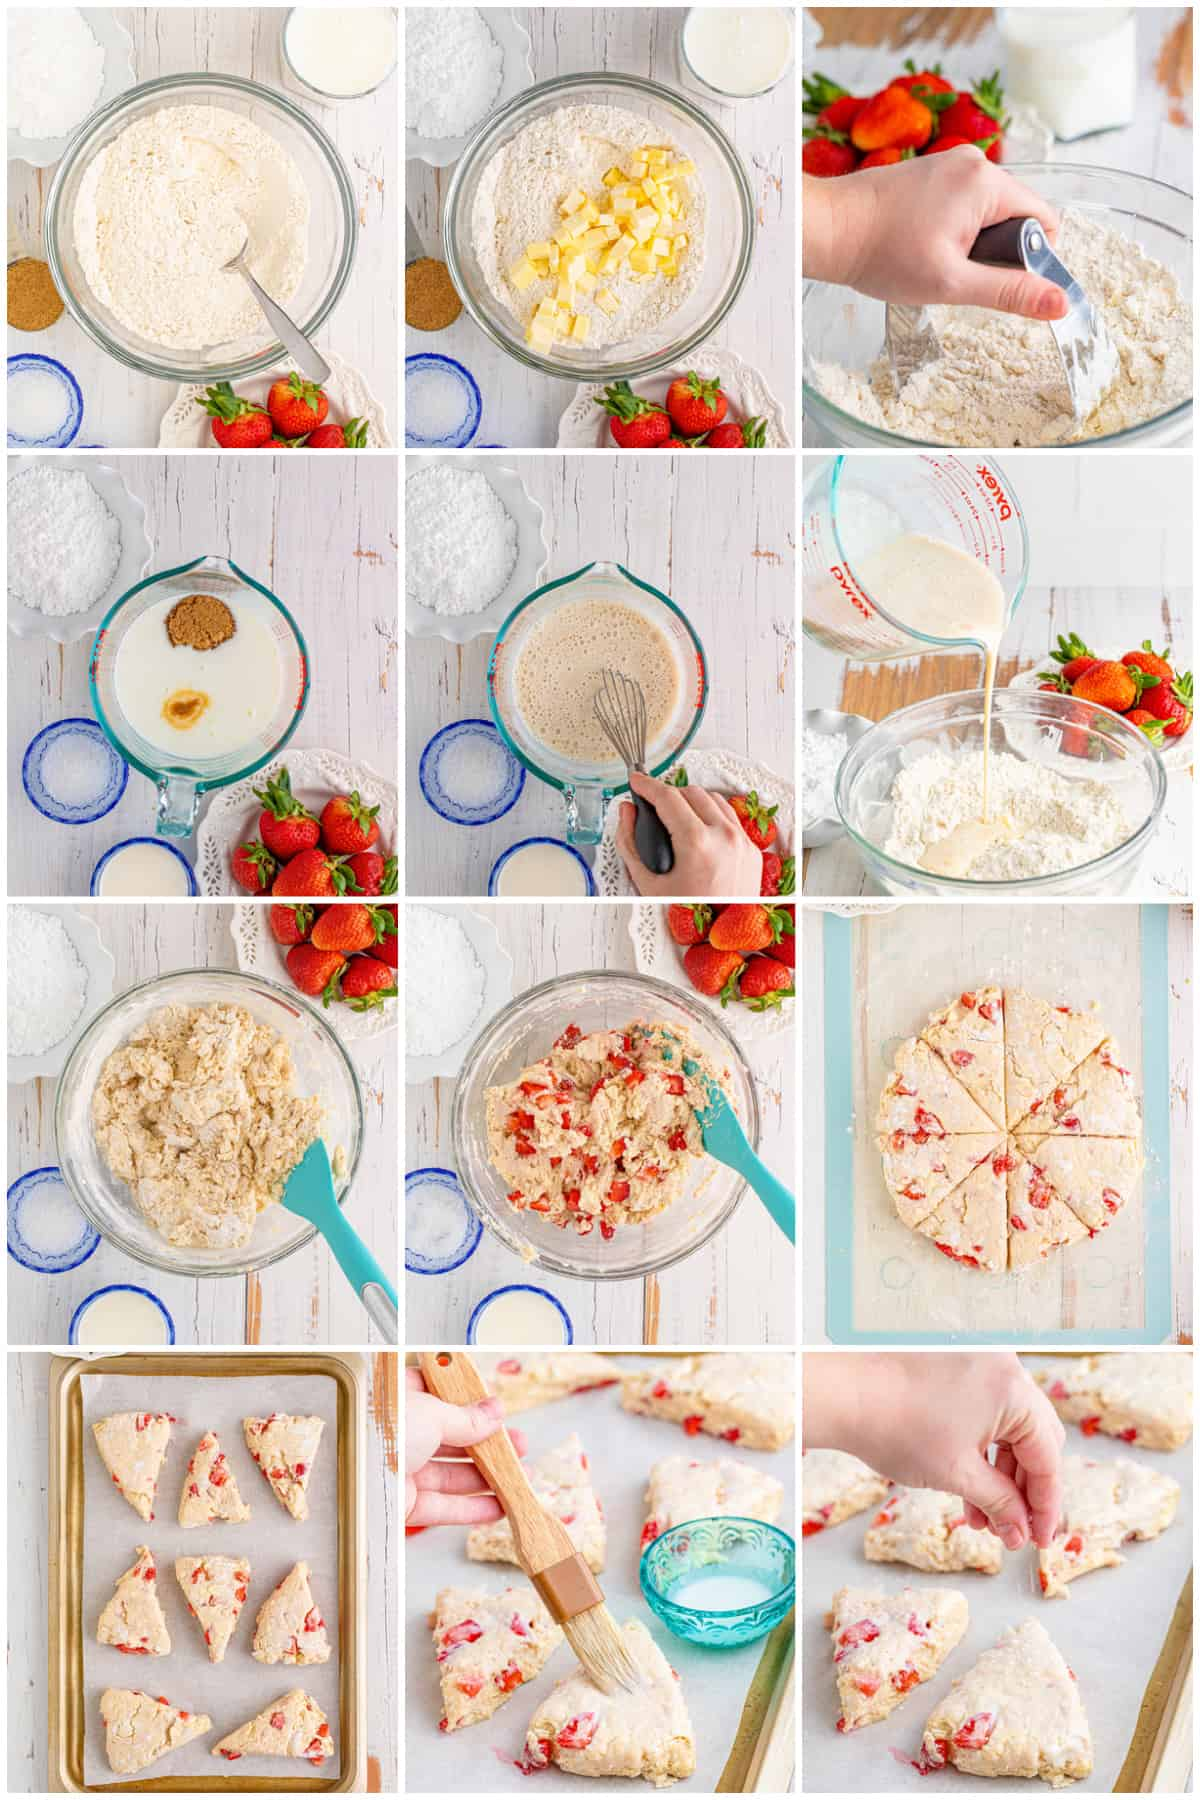 Step by step photos on how to make Strawberry Scones